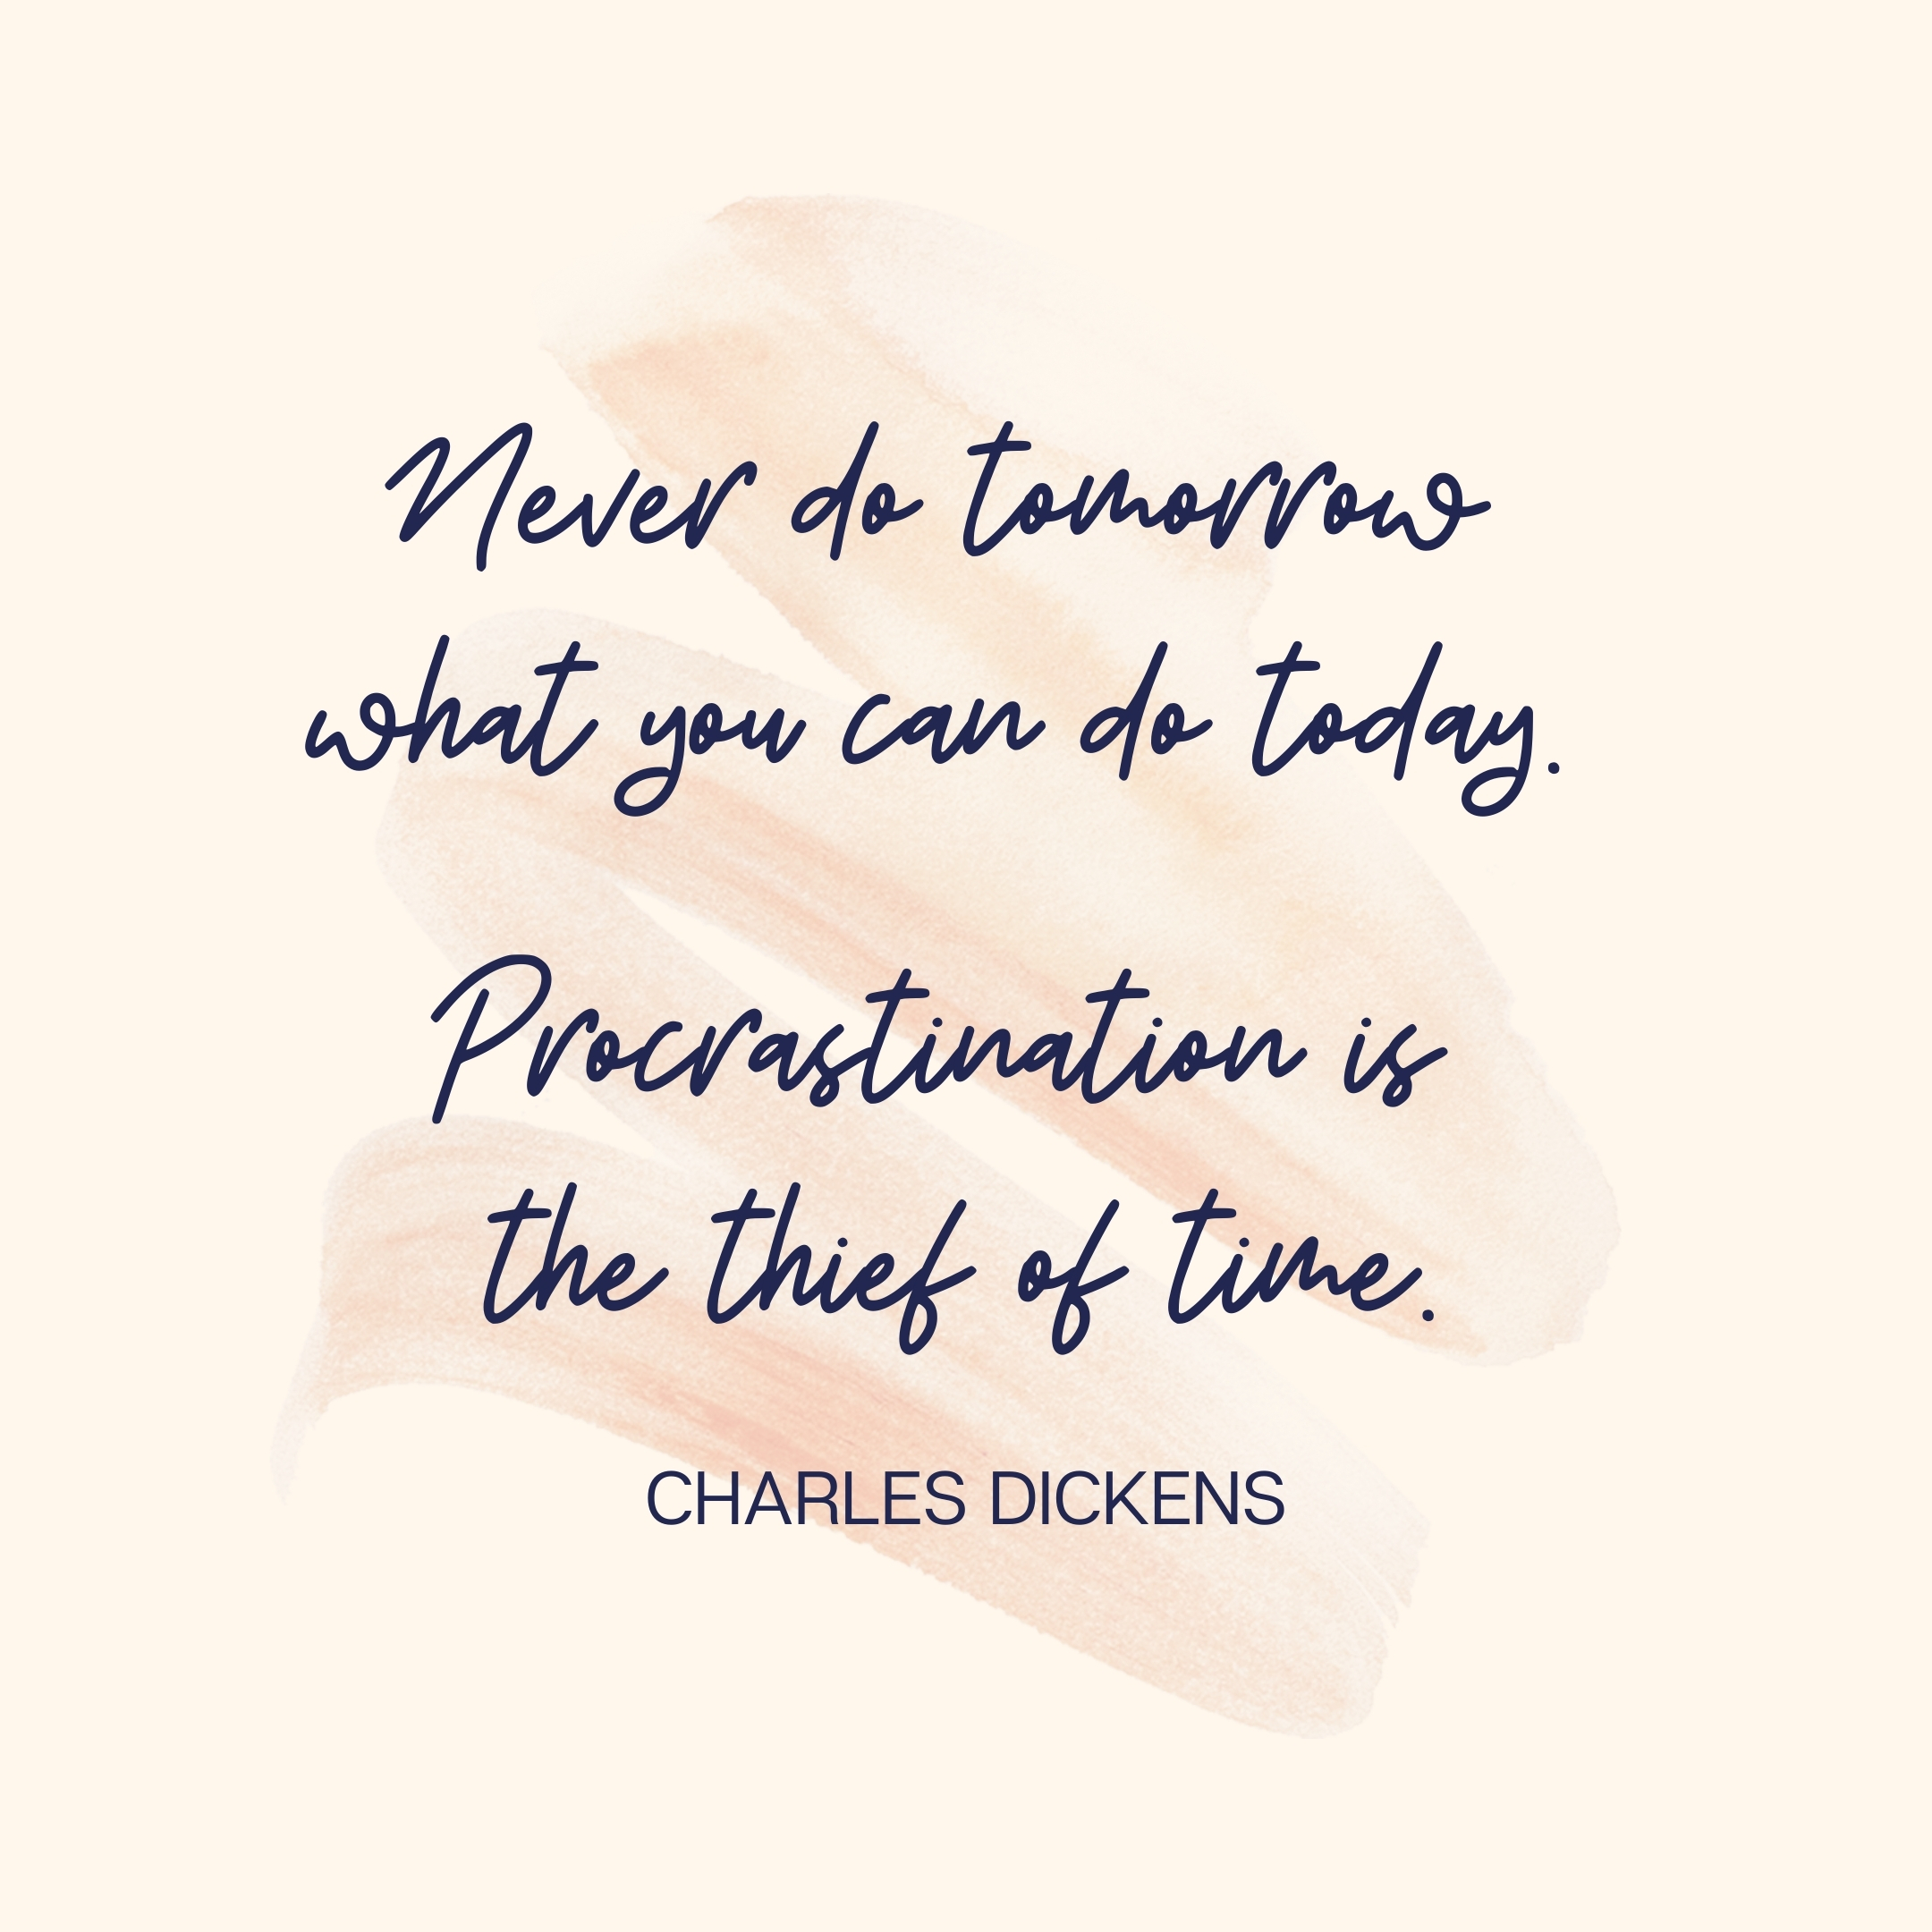 charles dickens quote | daily motivation